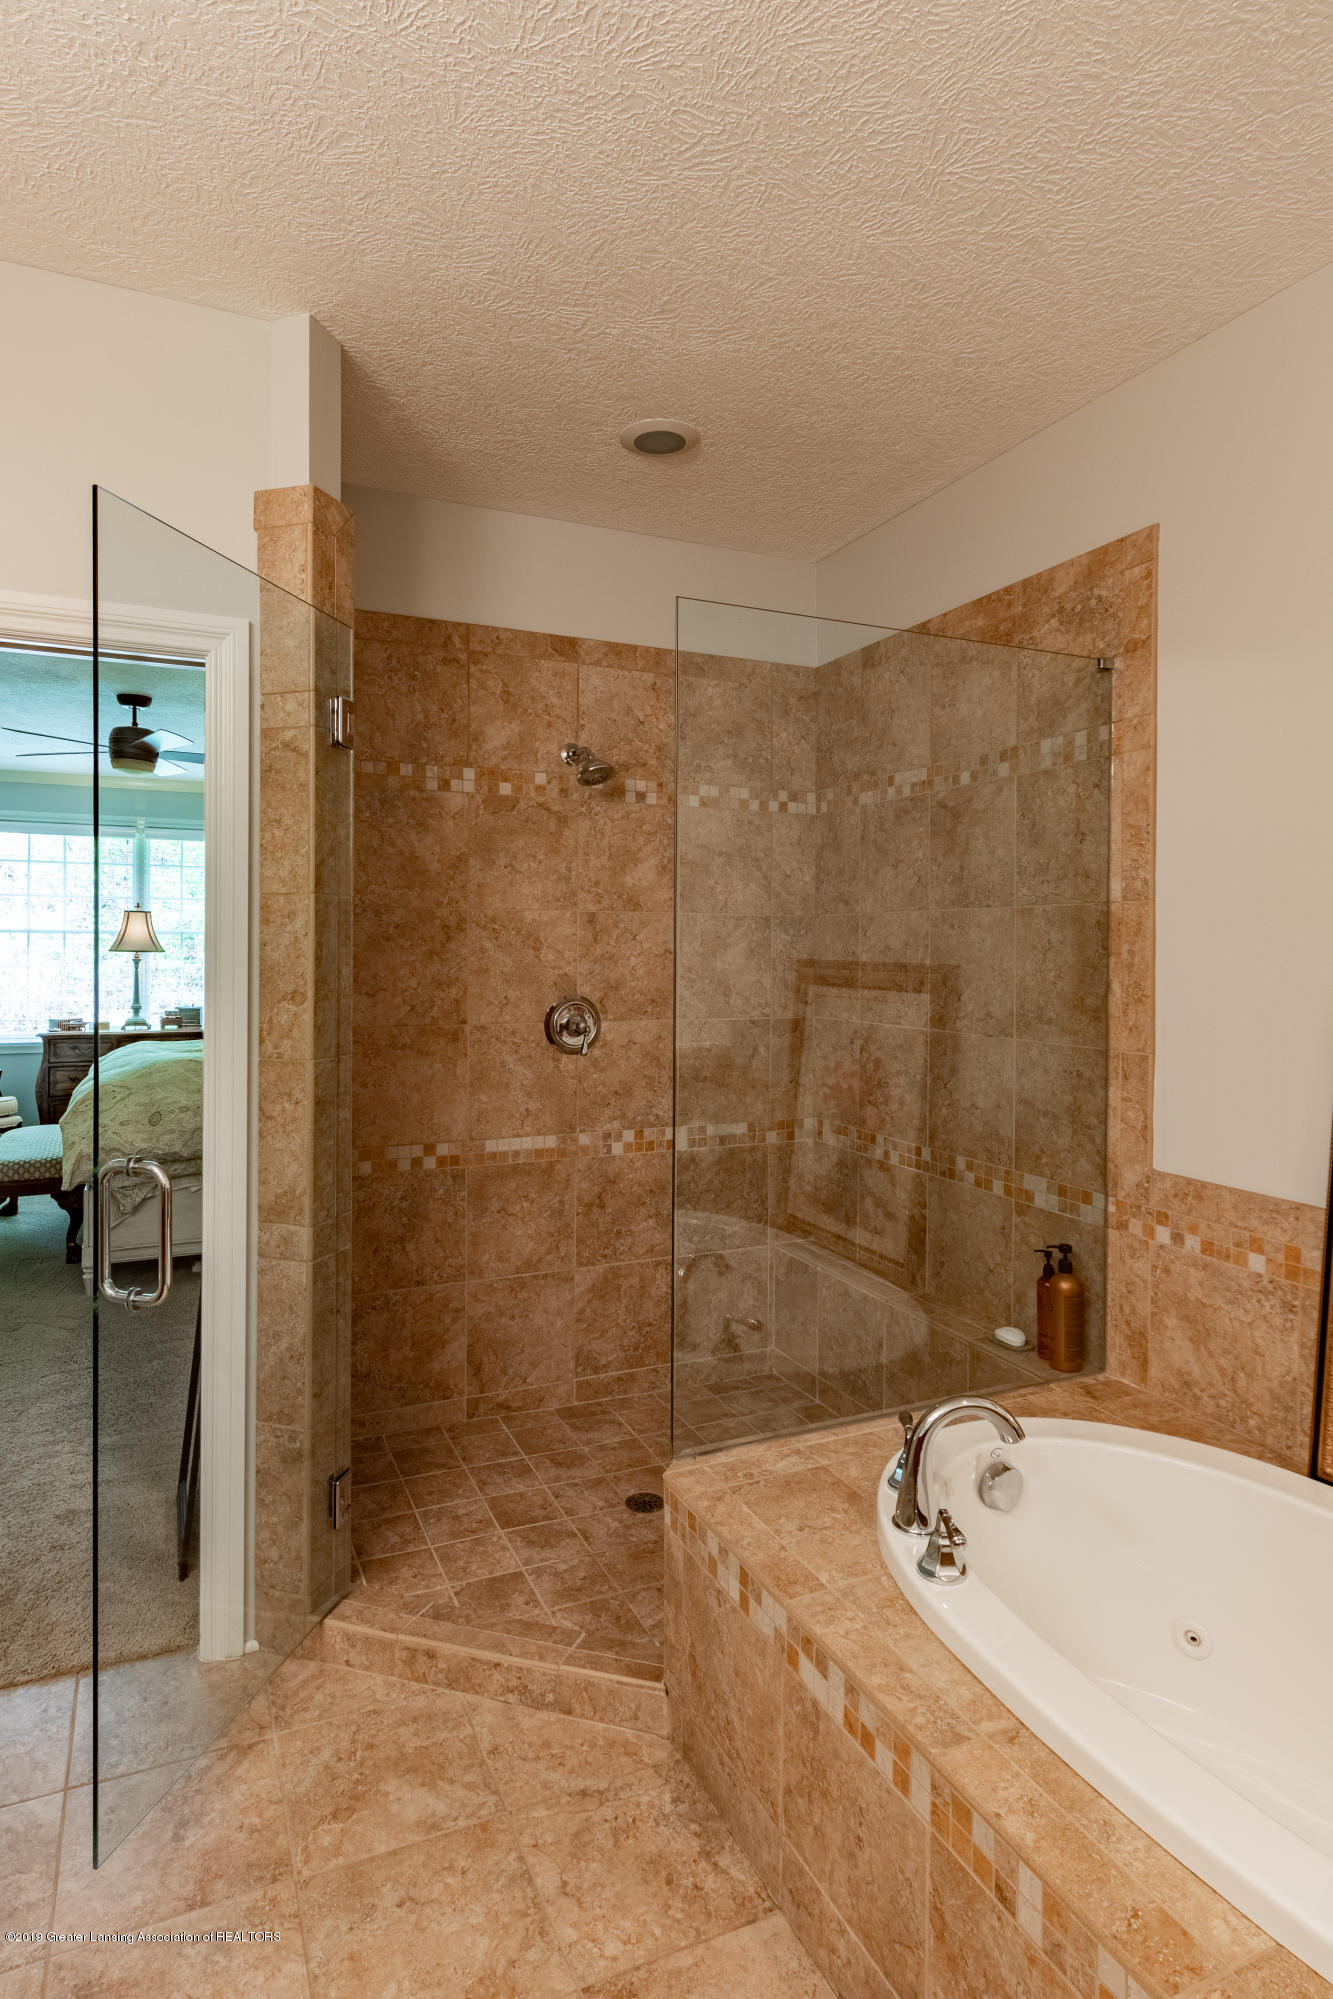 6155 Graebear Trail - Tiled walk-in shower - 29